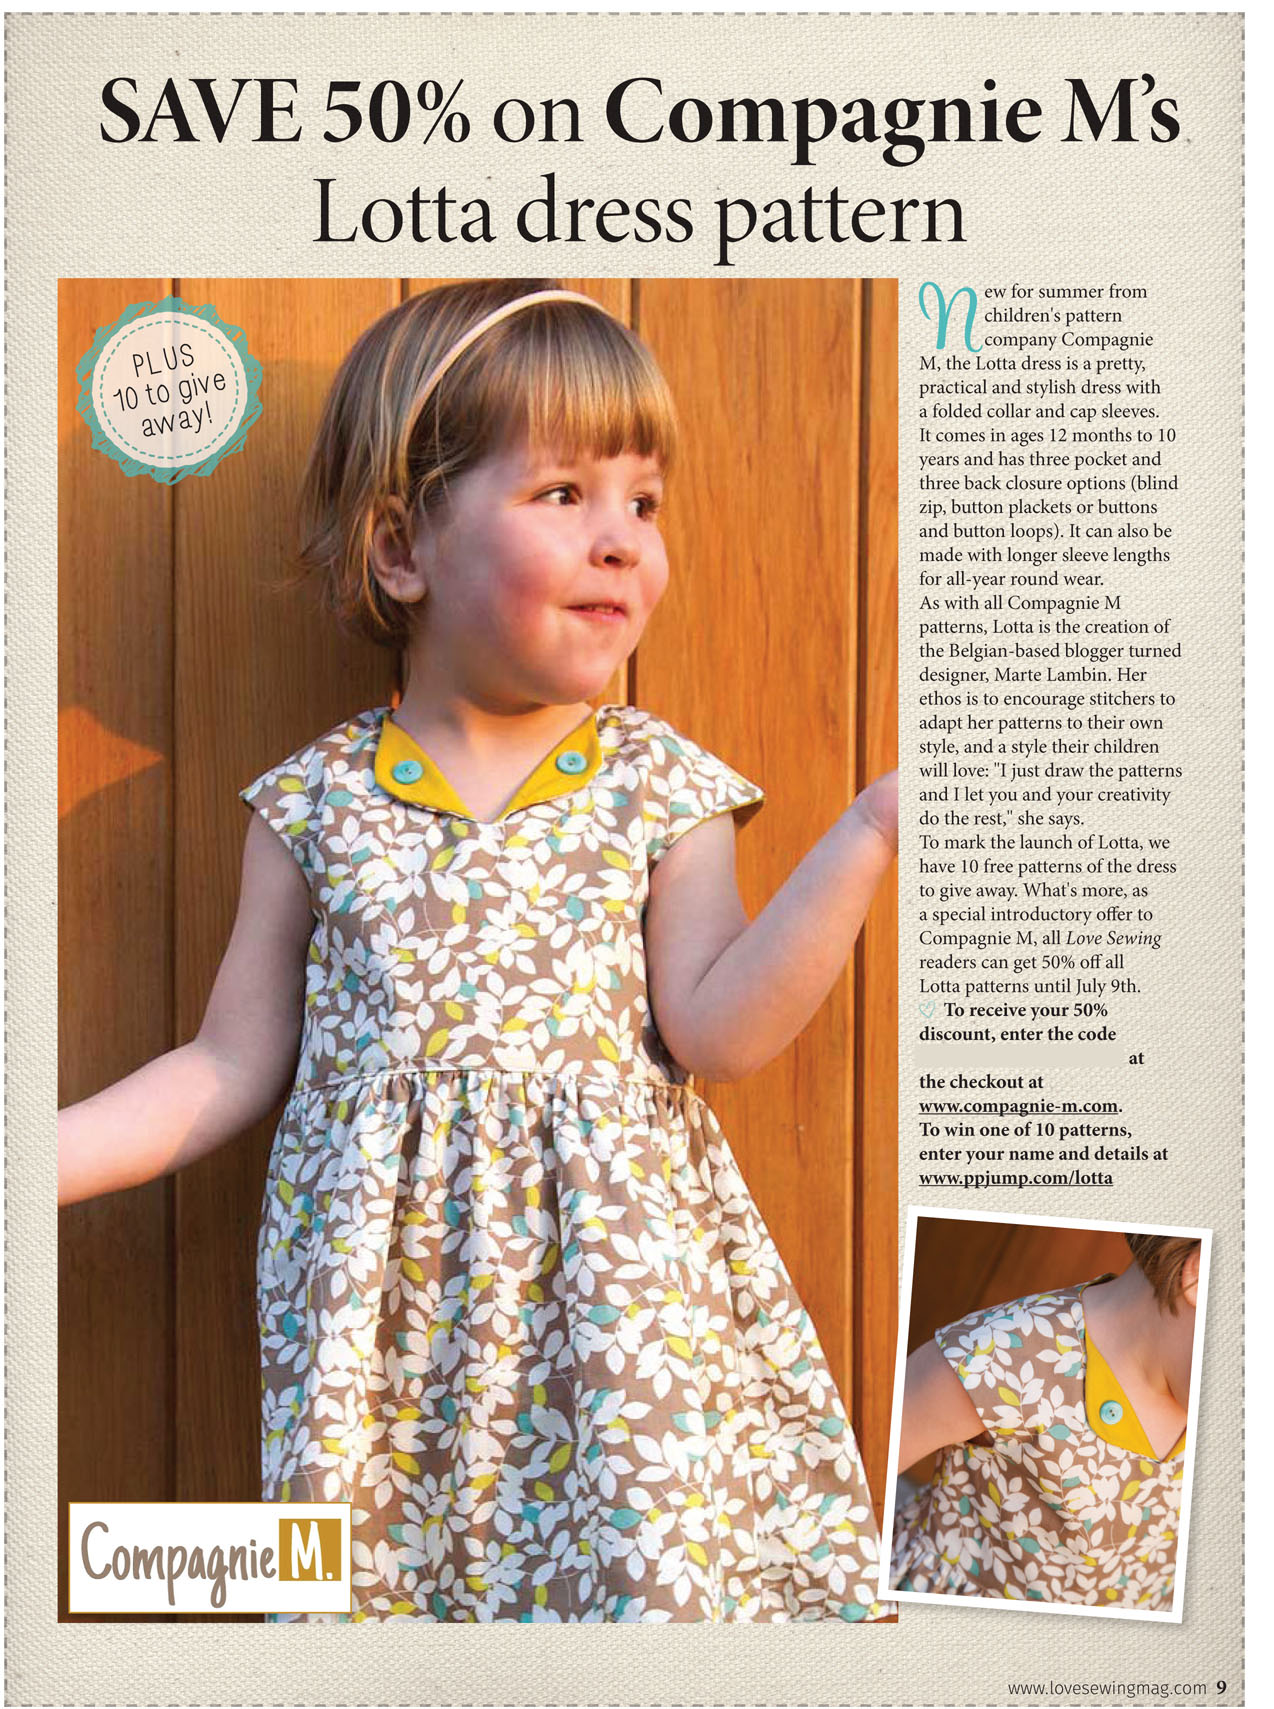 My Lotta dress in Love Sewing magazine UK + give away!